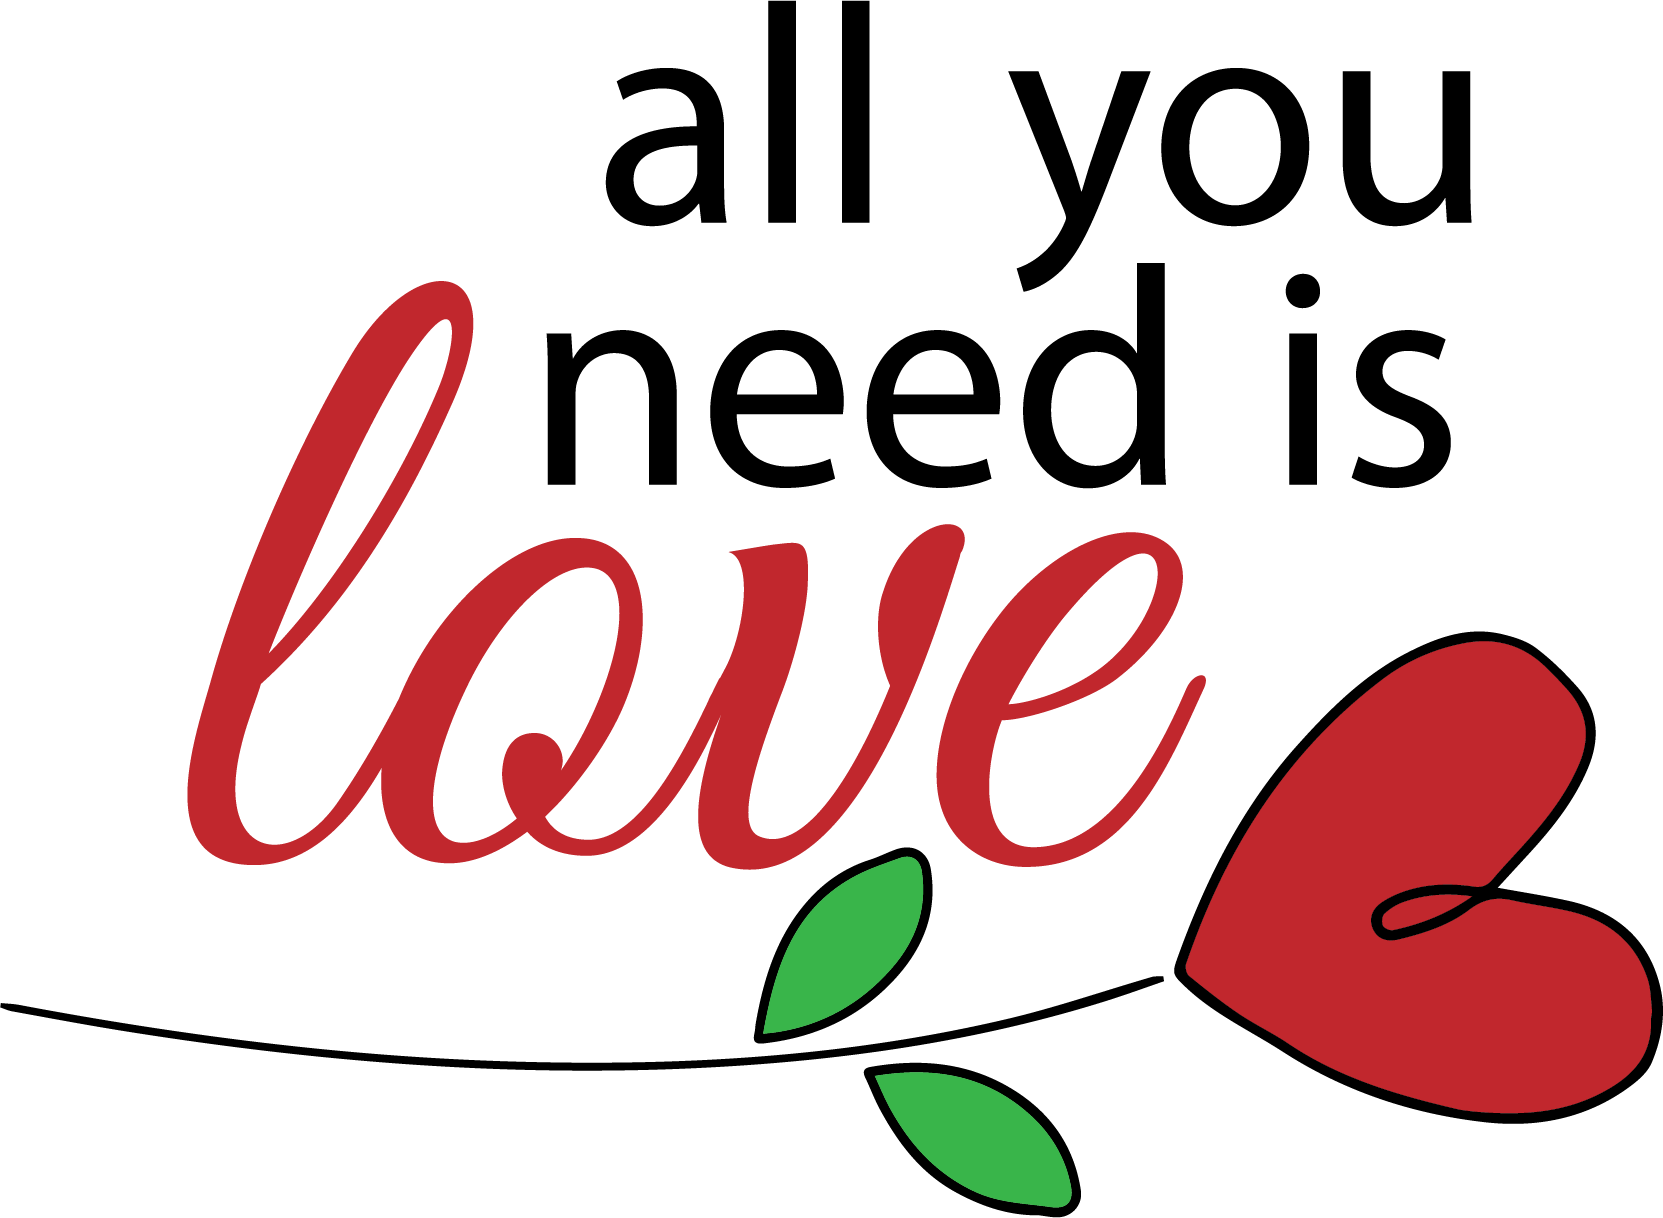 Download All You Need is Love - free SVG #freesvg in 2020   All you ...